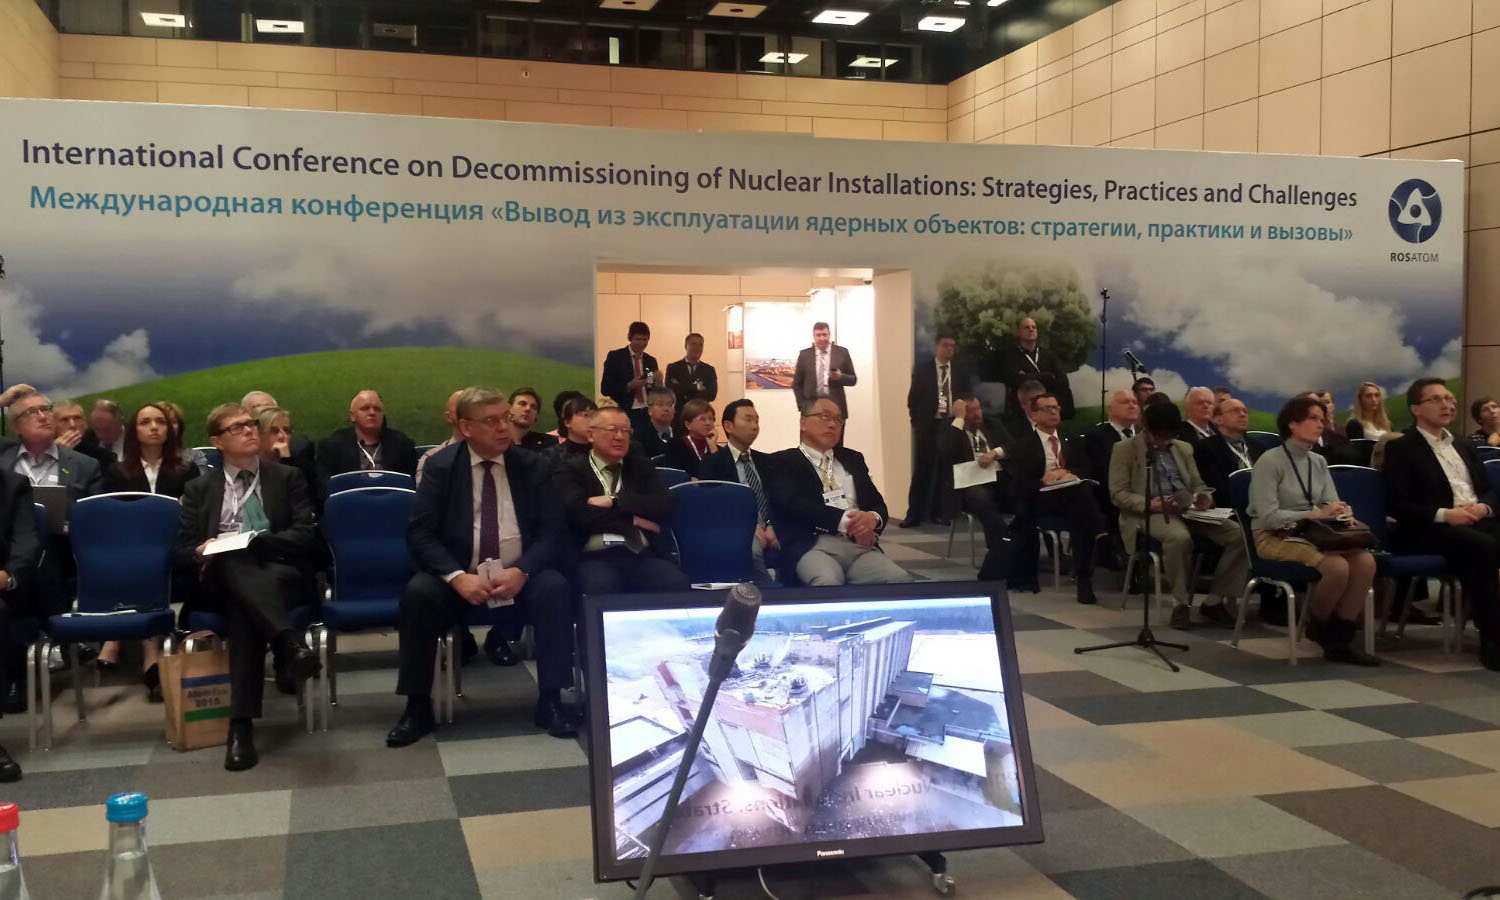 International Conference on Decommissioning of Nuclear Installations: Strategies, Practices and Challenges